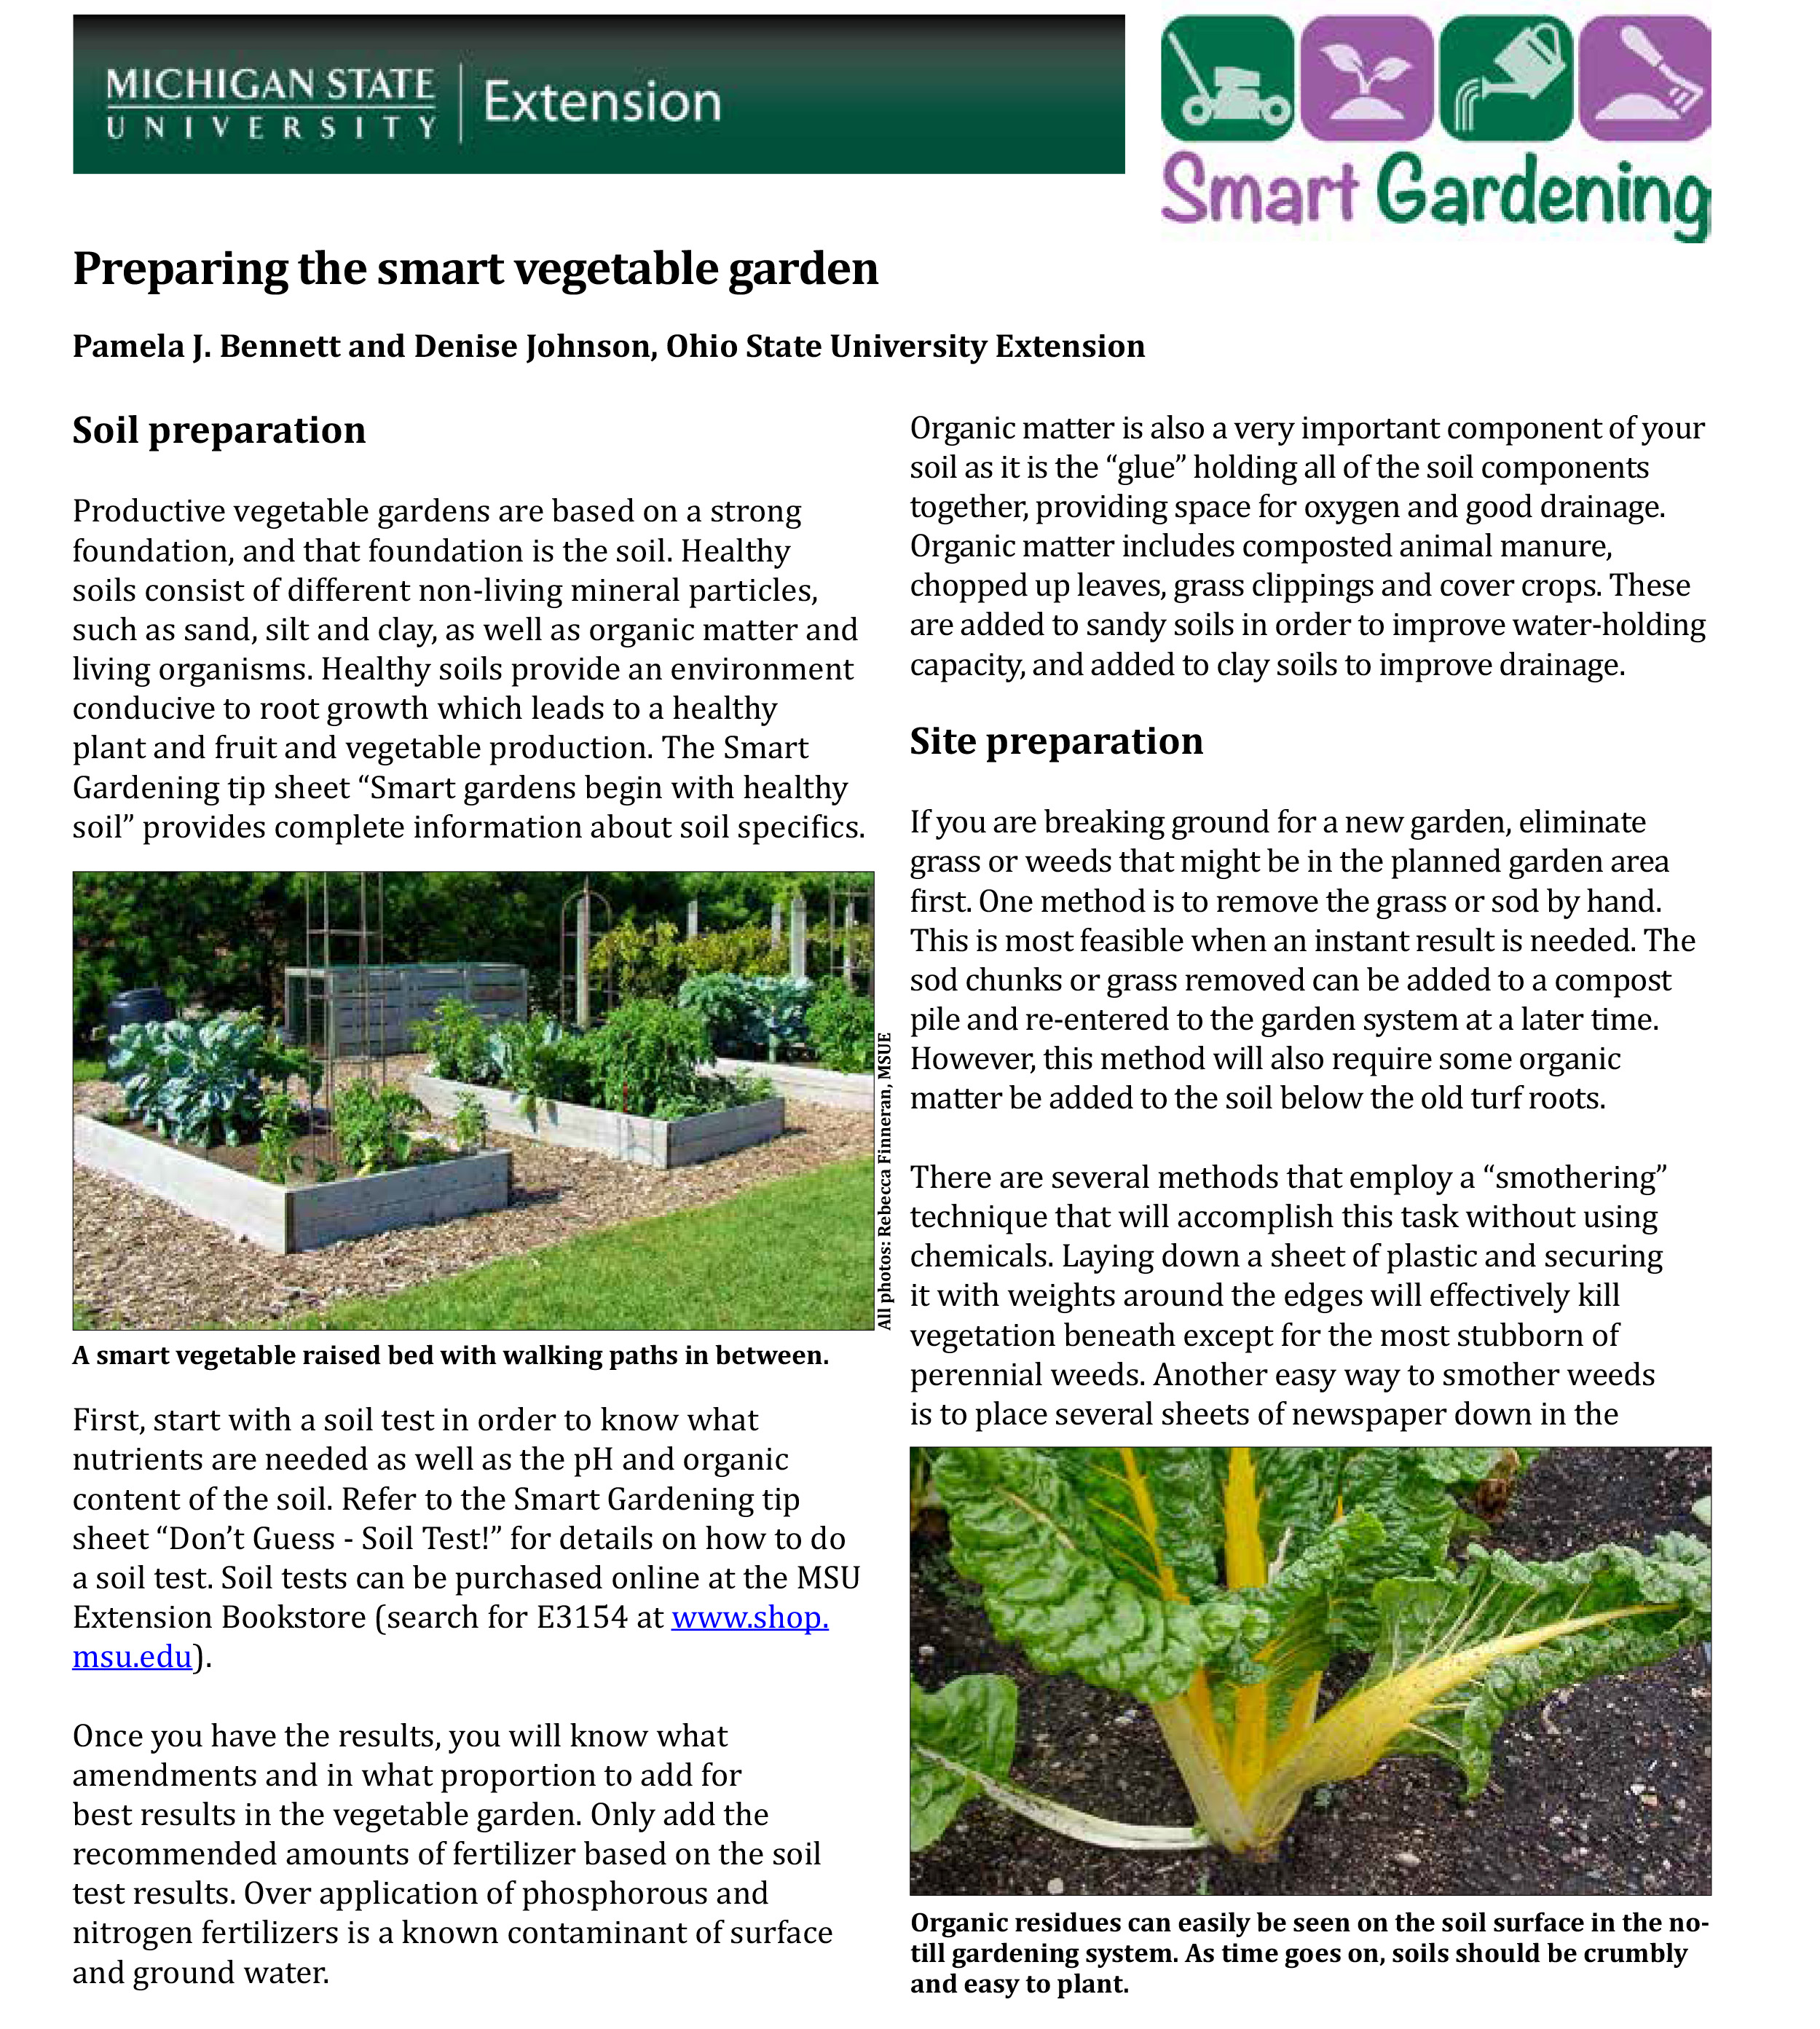 Preparing the smart vegetable garden